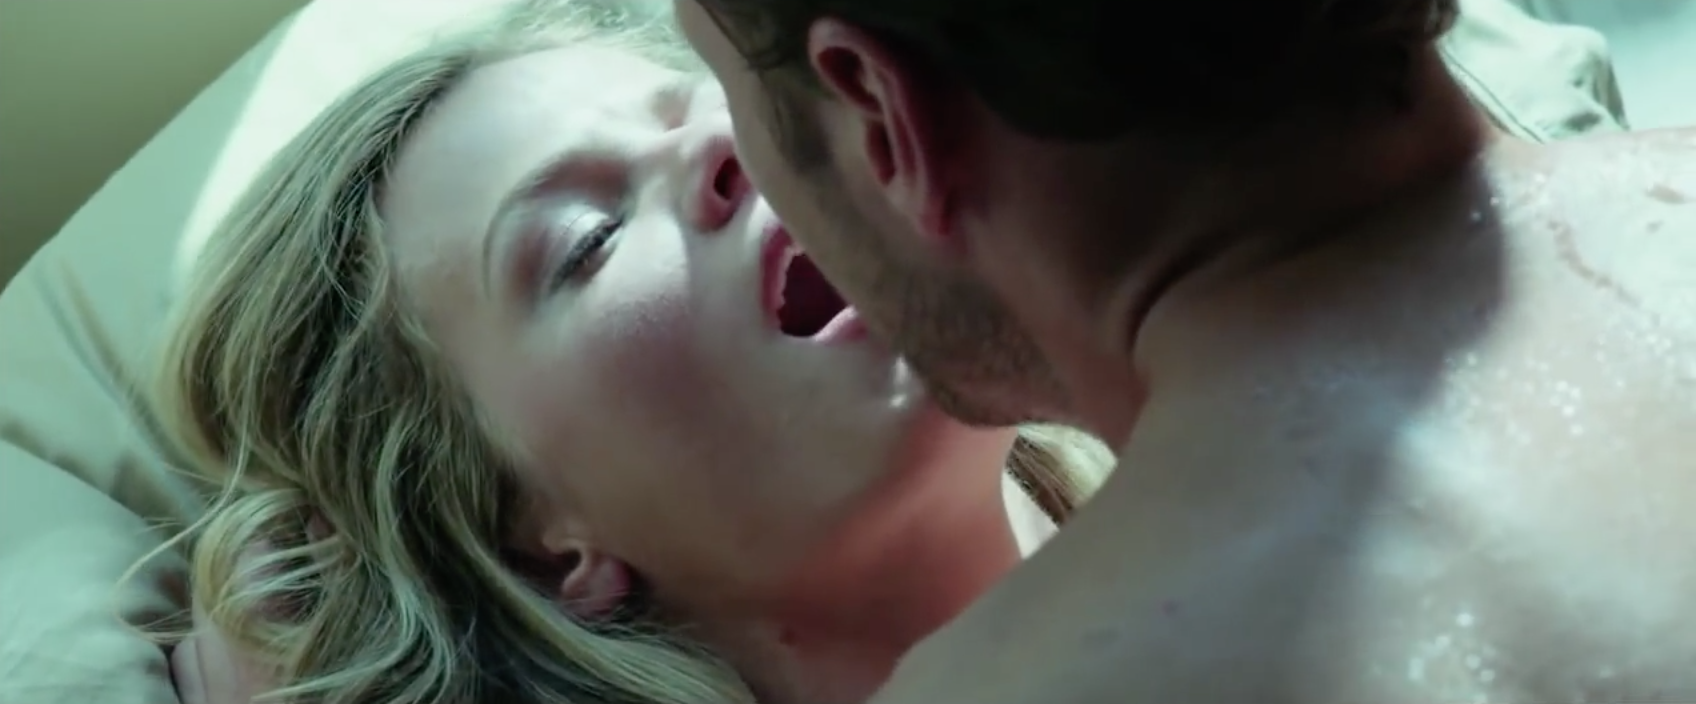 hot sex scene in movies